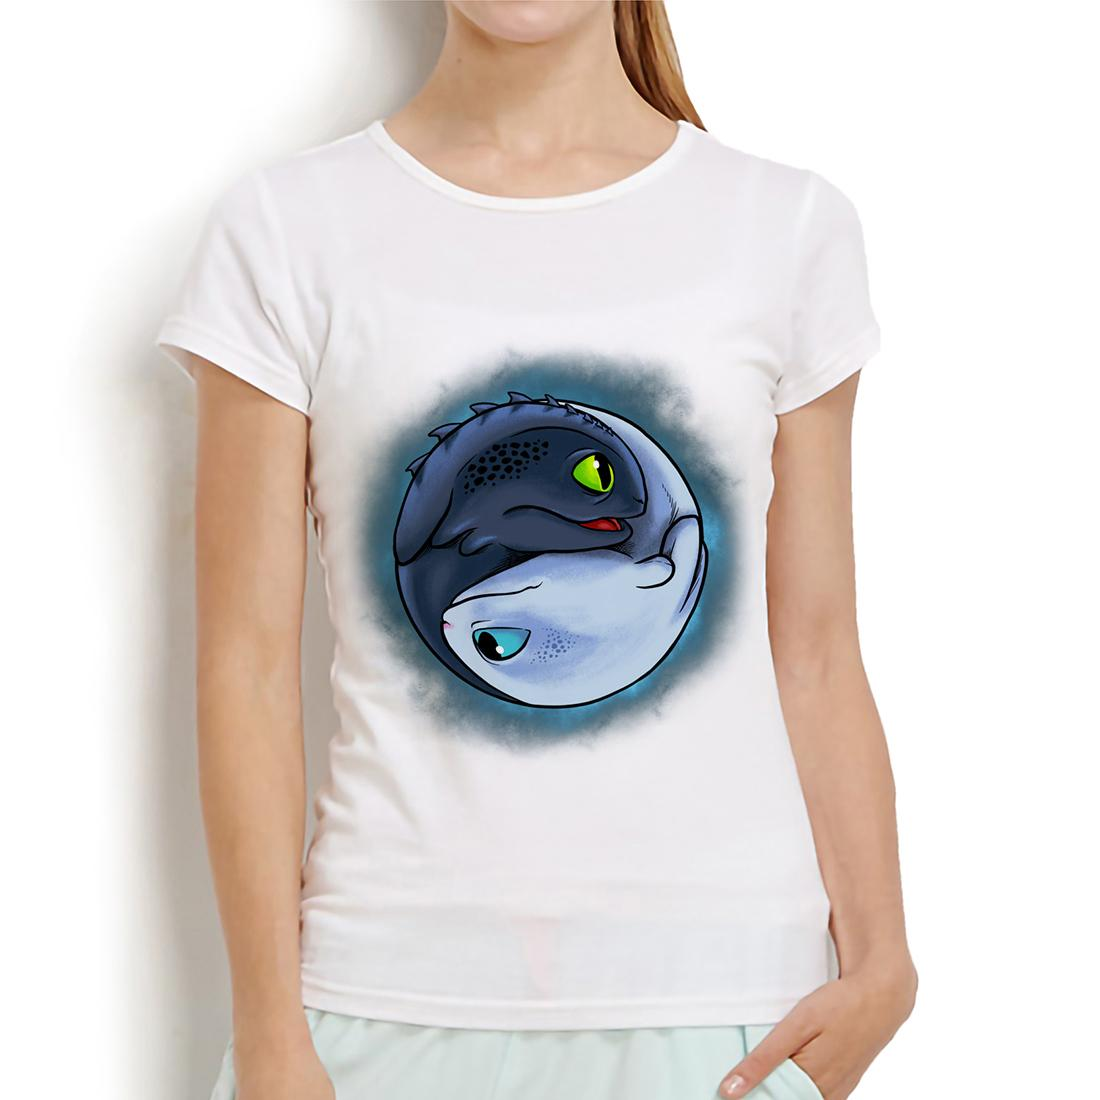 HTTYD Light Fury and Night Fury funny anime t shirt women summer new white casual femme tshirt How To Train Your Dragon